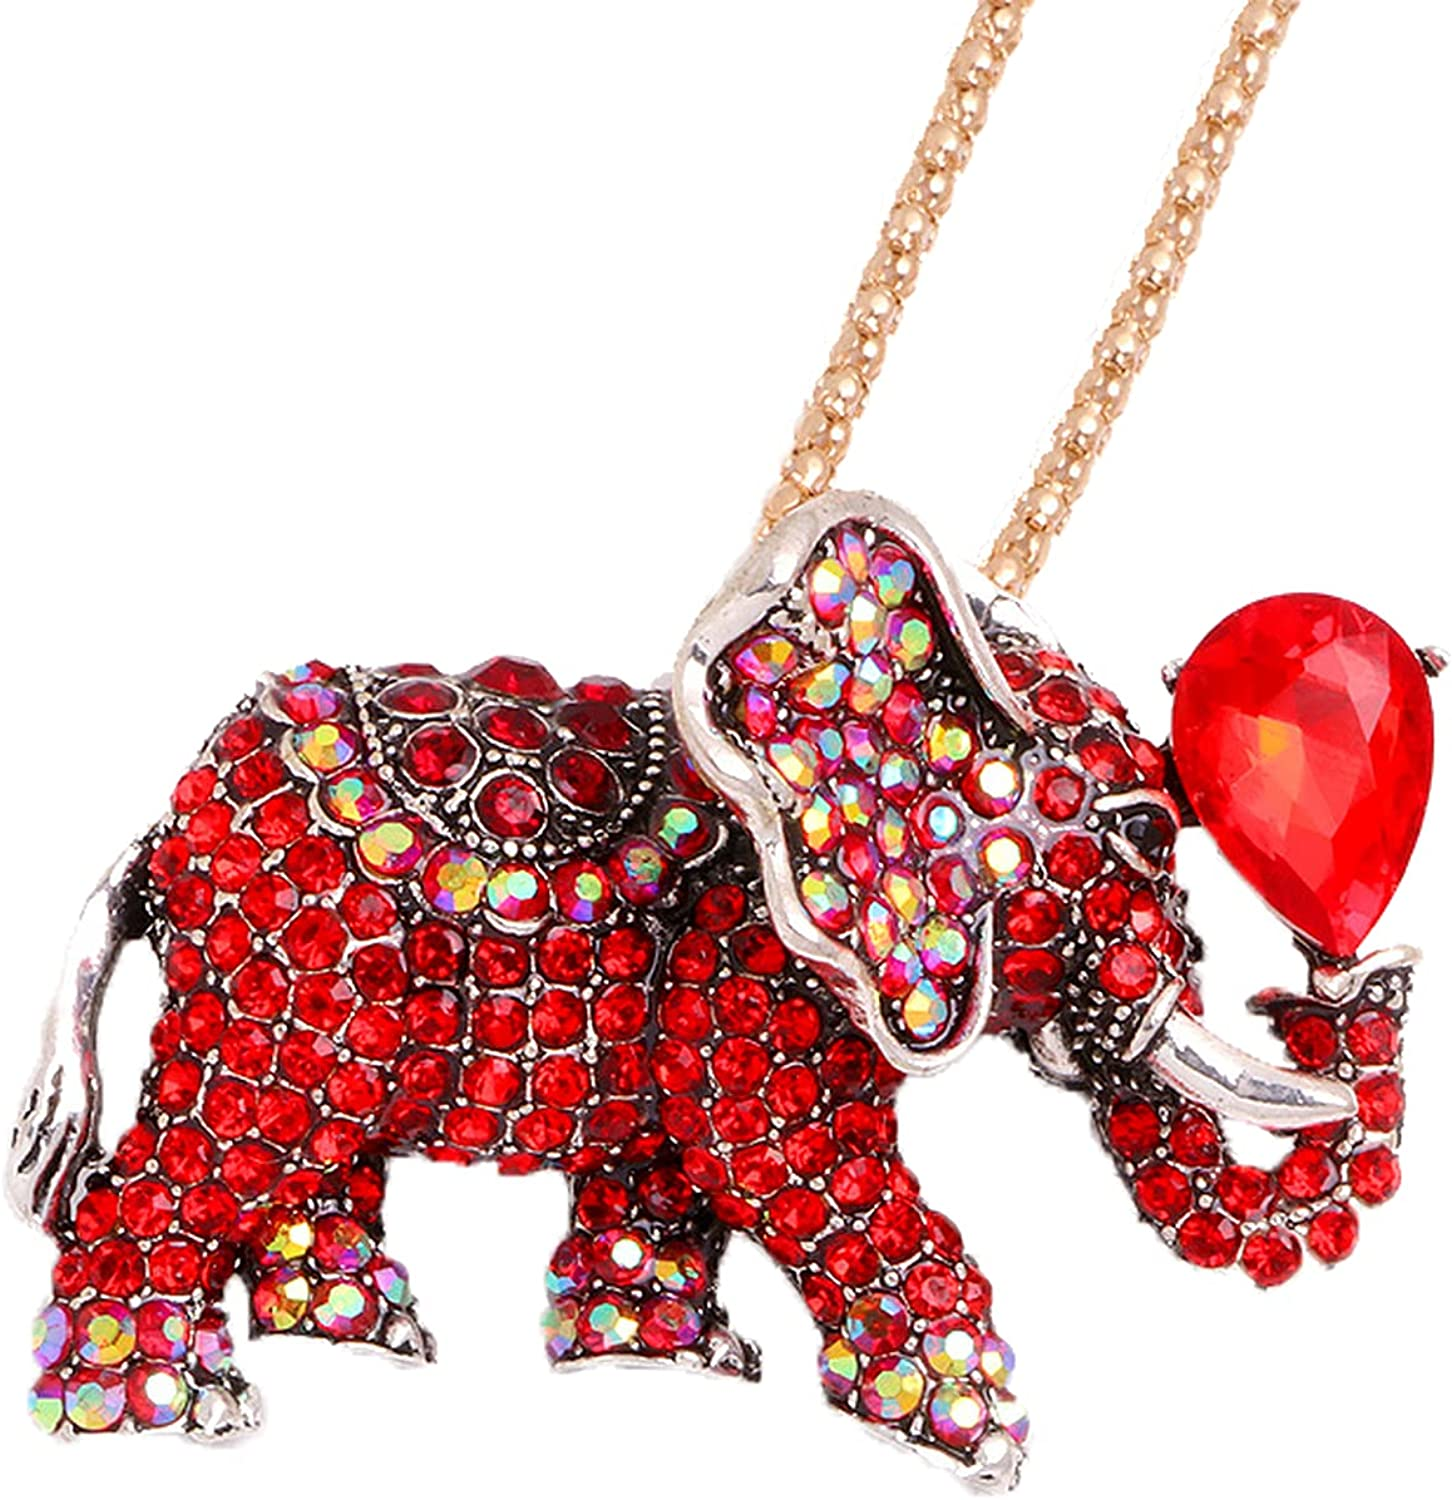 Cifibifun Elephant Crystal Brooch Pin Animal Pendant,Woman Girl Fashion Accessories Rhinestone Classic Luxuriant Style with Gift Packing for Her